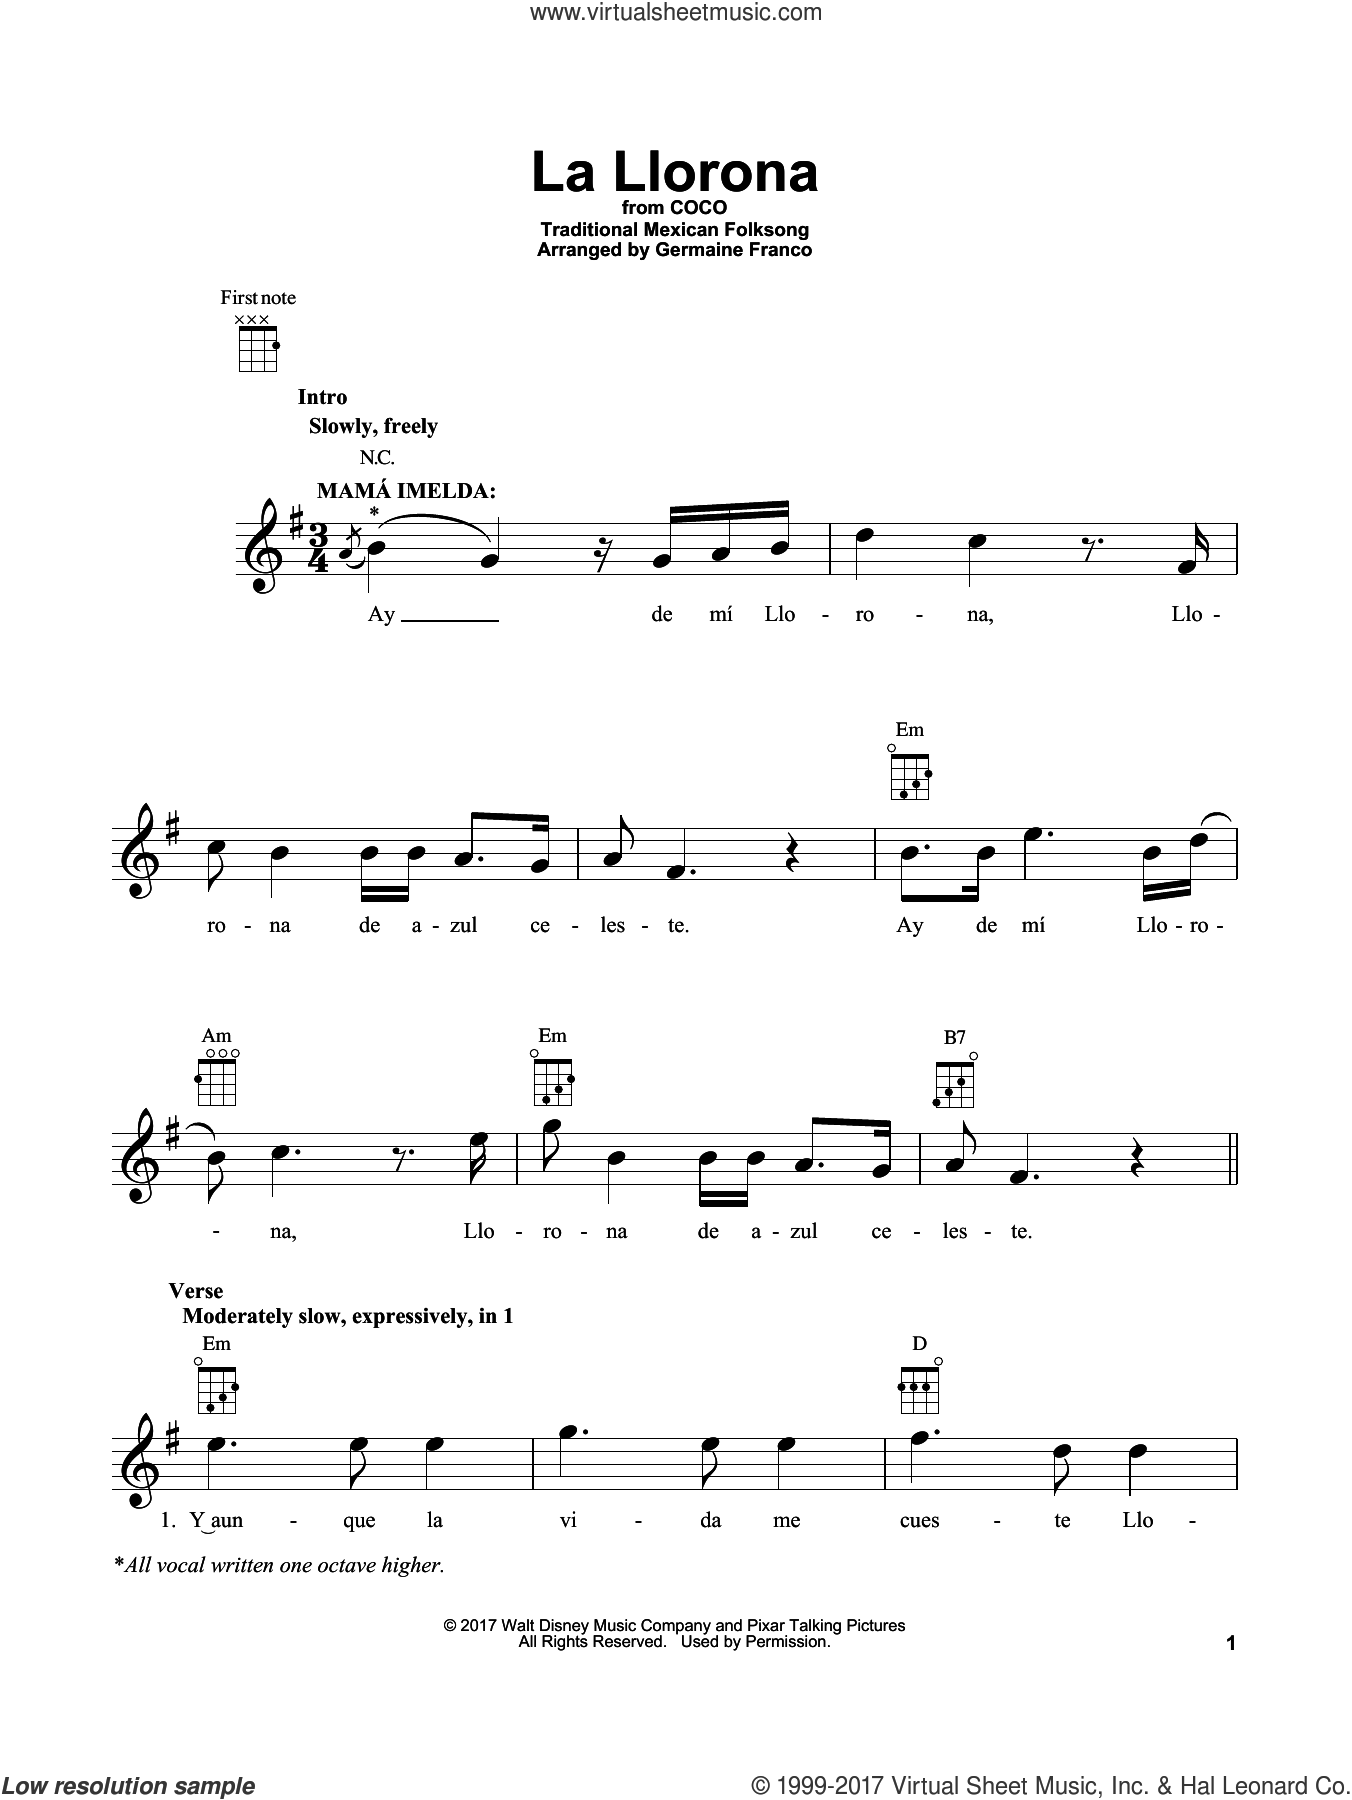 La Llorona (from Coco) sheet music for ukulele by Germaine Franco, Coco (Movie) and Traditional Mexican Folksong, intermediate skill level